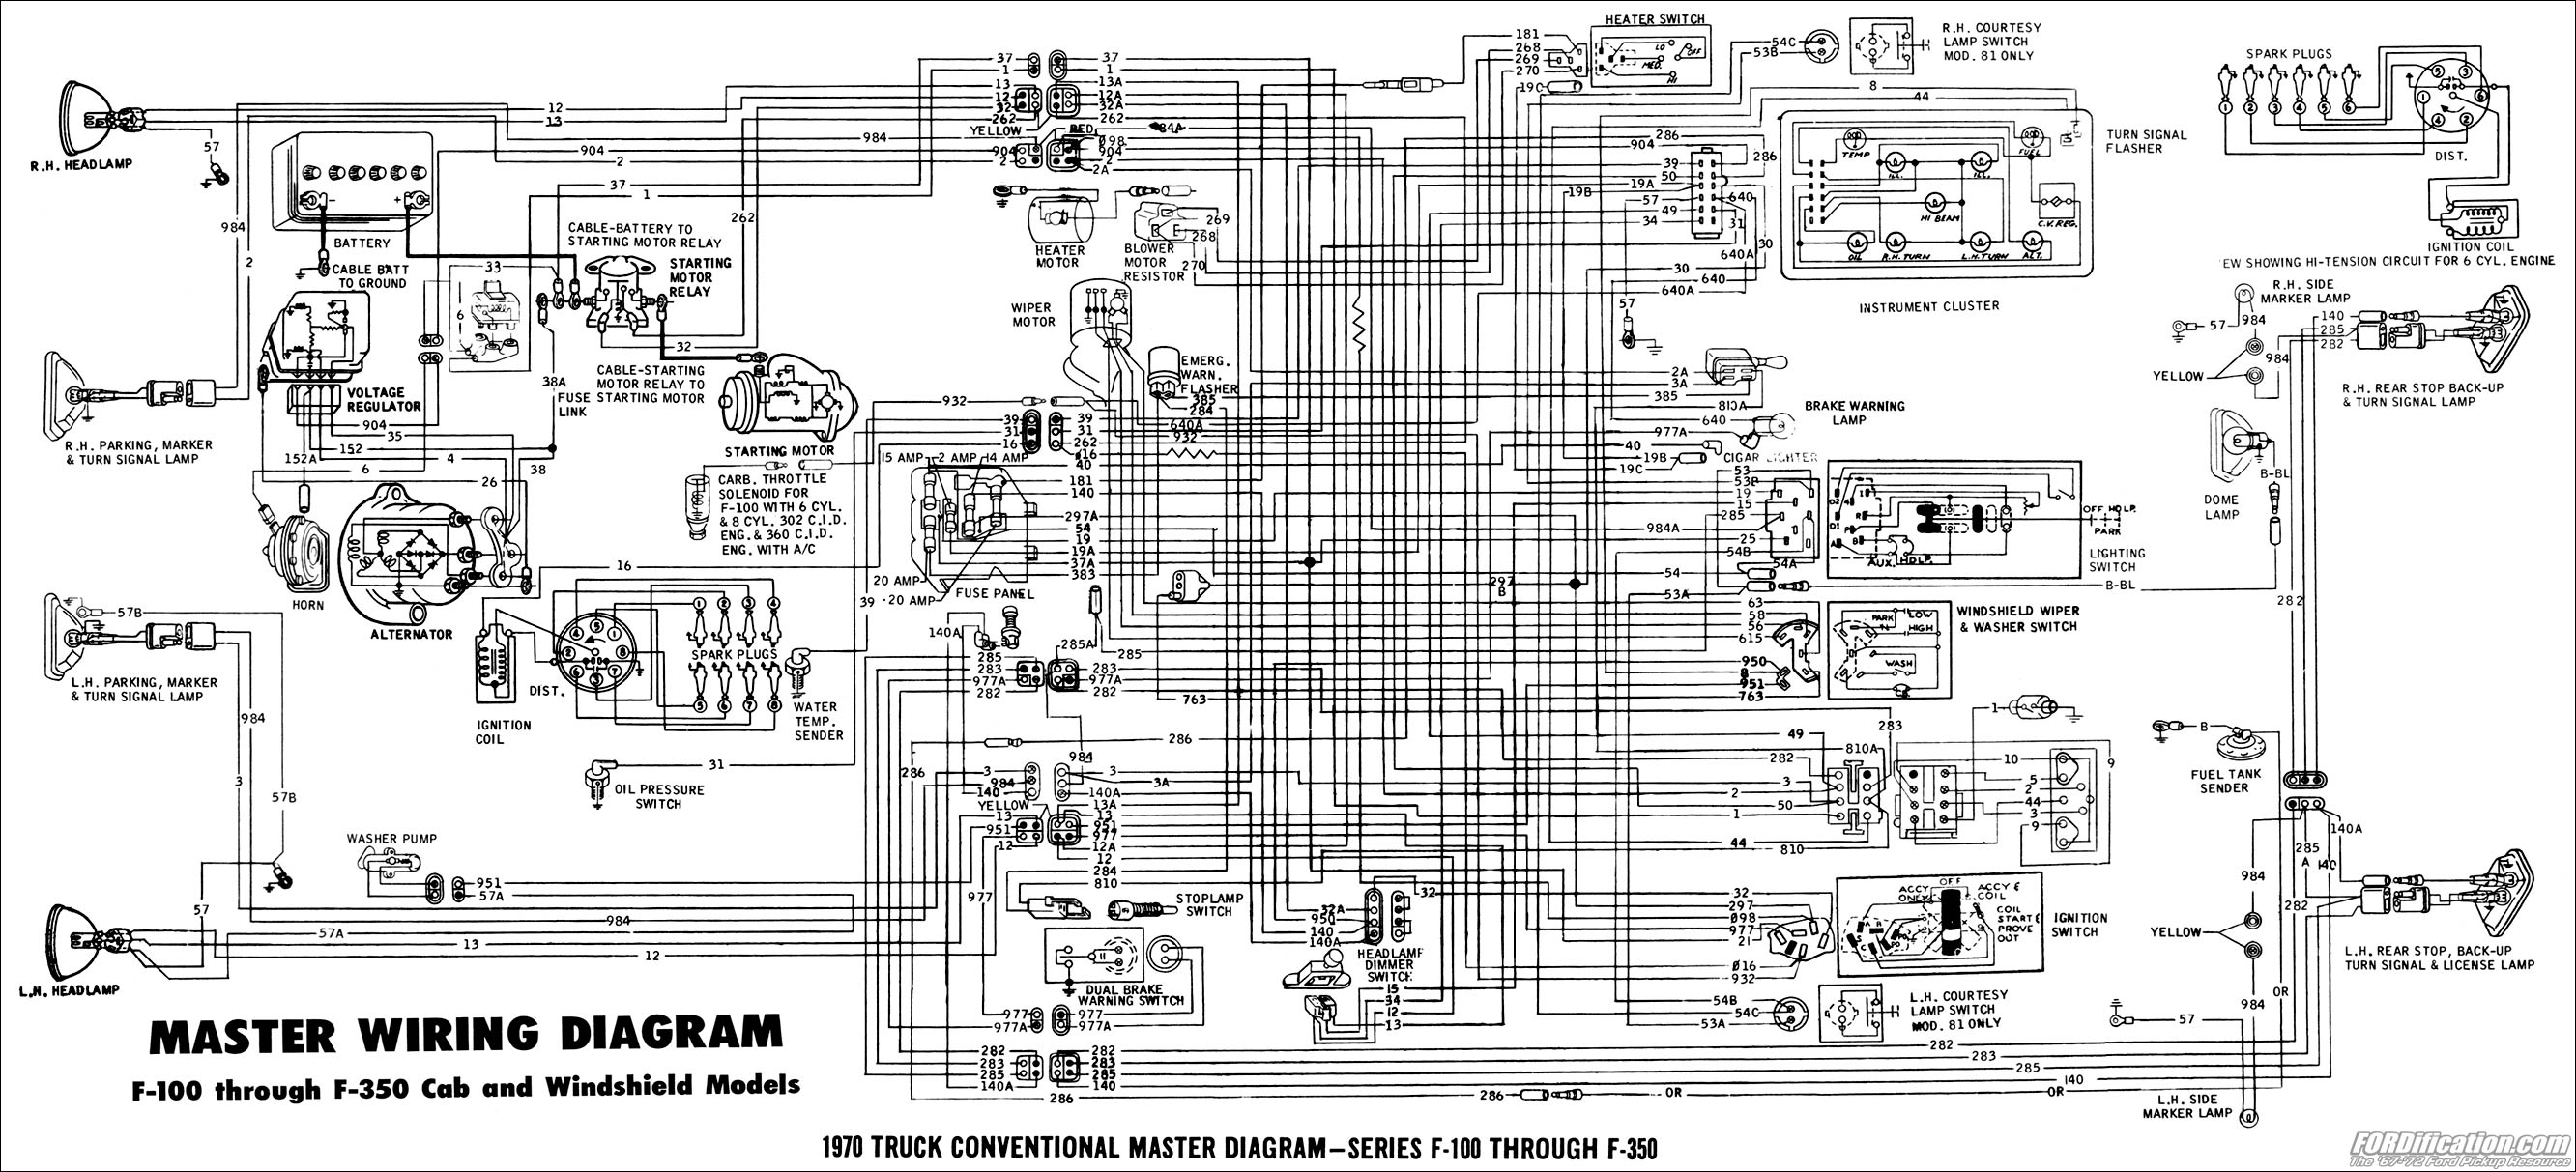 2006 Ford 750 Wire Diagrams Wiring Library F150 Alternator Warning Light Diagram 1970 F 250 Opinions About U2022 Brake